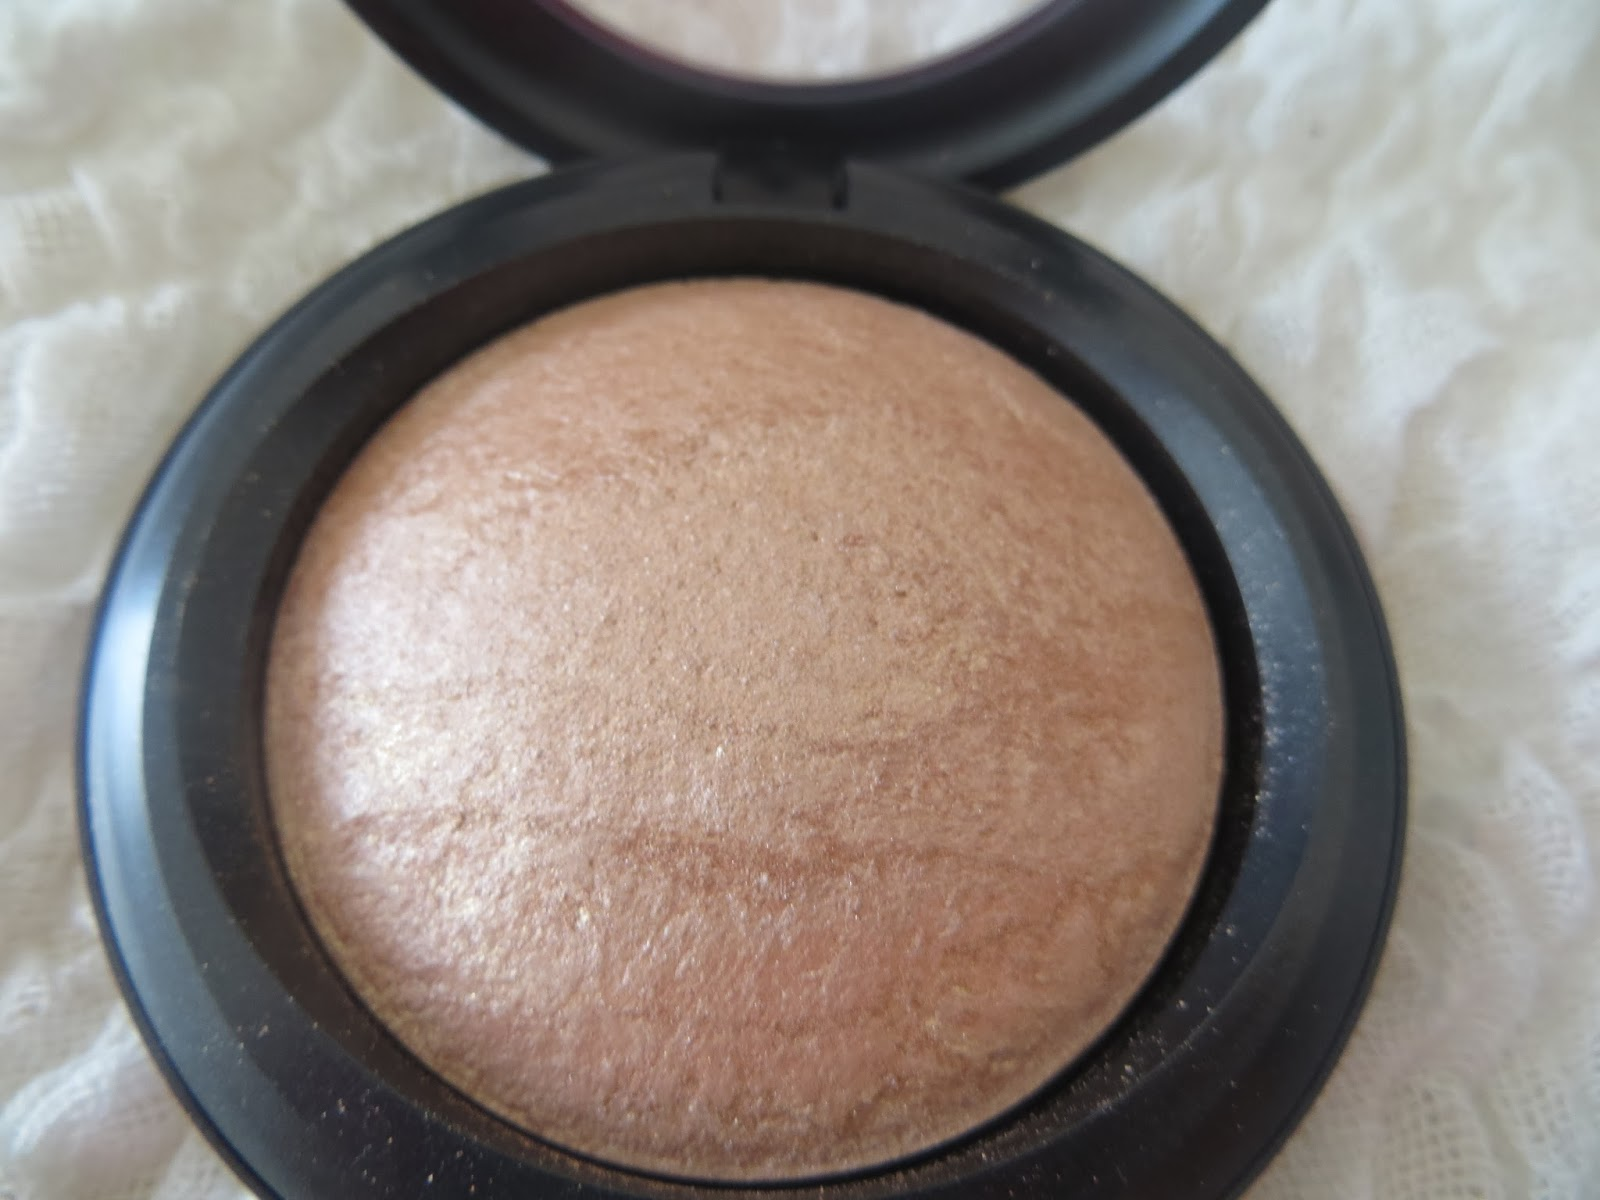 MAC, Review, Mineralize skinfinish, Soft and Gentle, Shimmer, HIghlighter, Bronzer, Blogger, Pretty, swatch